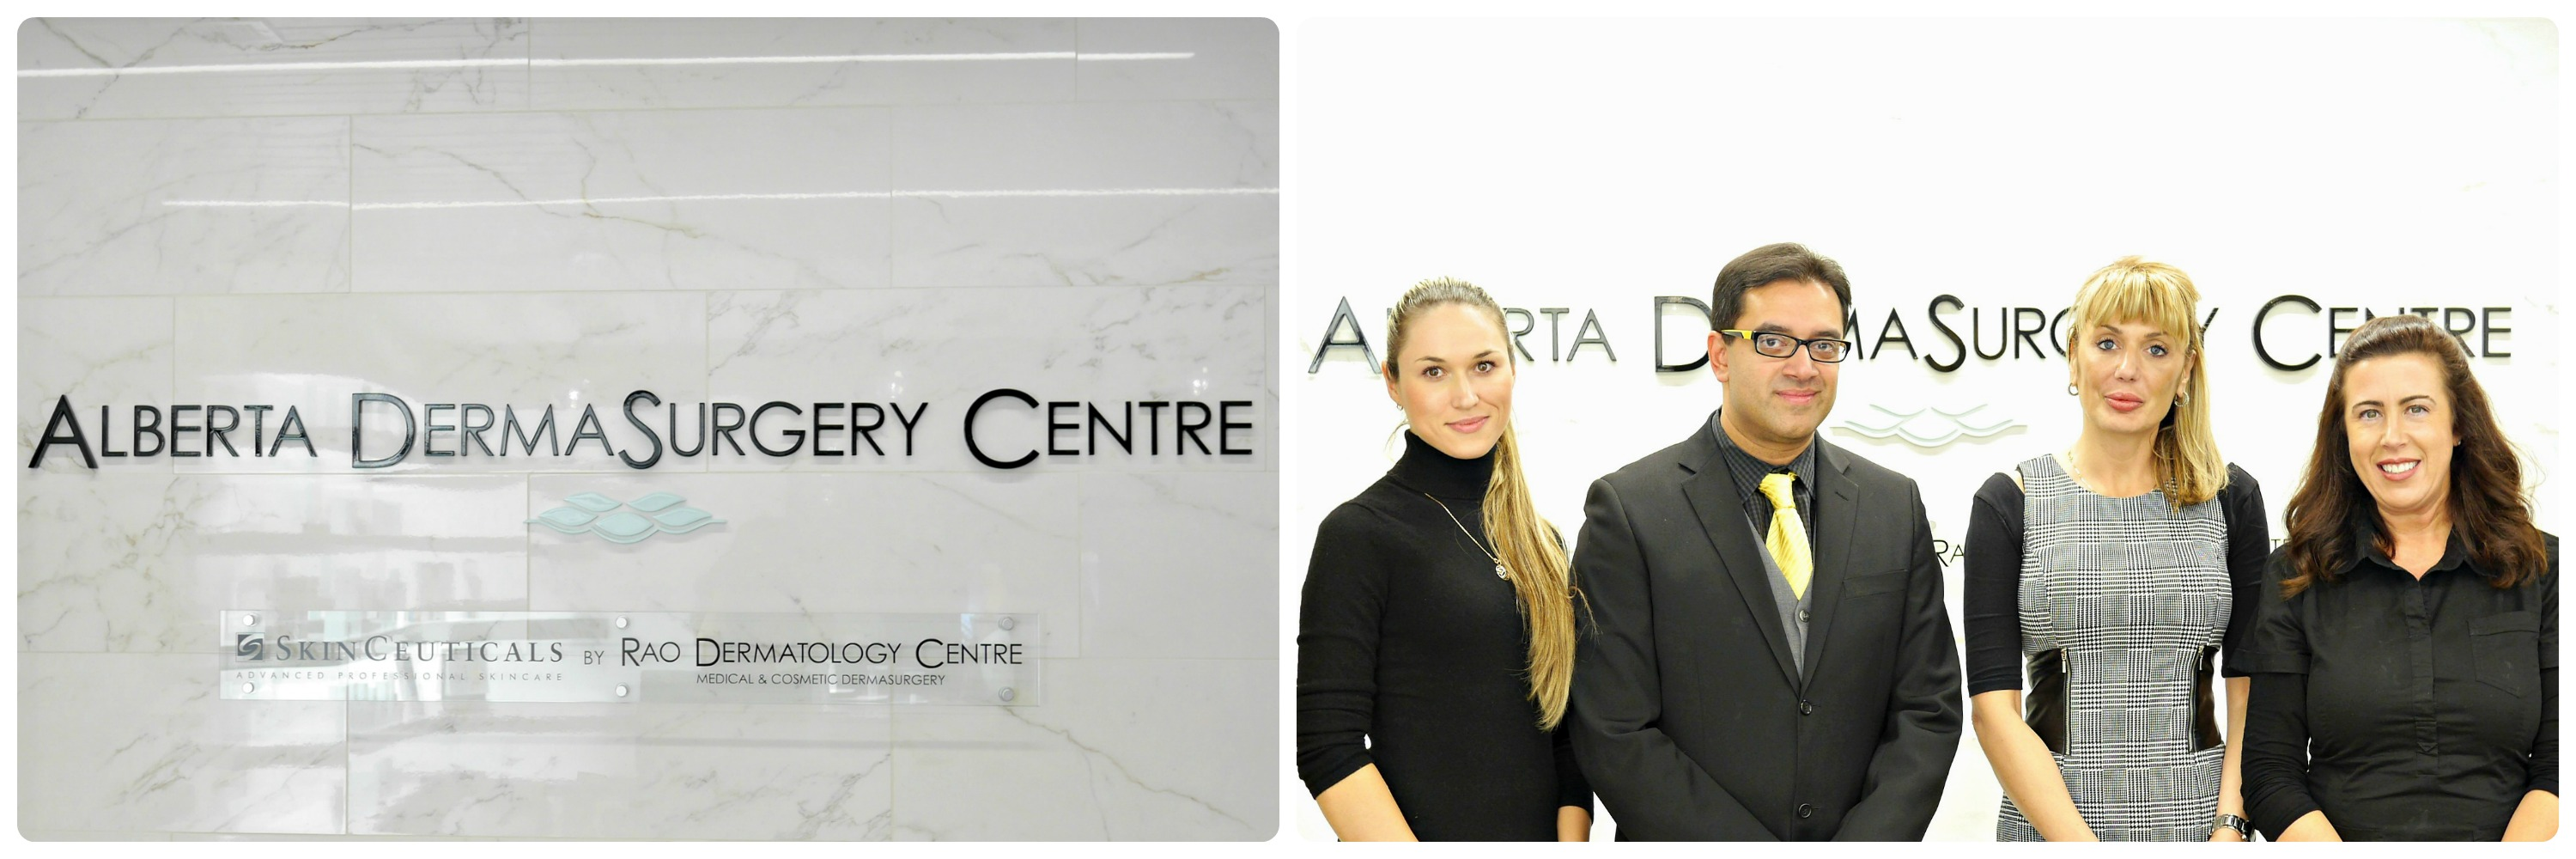 Alberta Dermasurgery Centre – Rao Dermatology & SkinCeuticals Launch Event